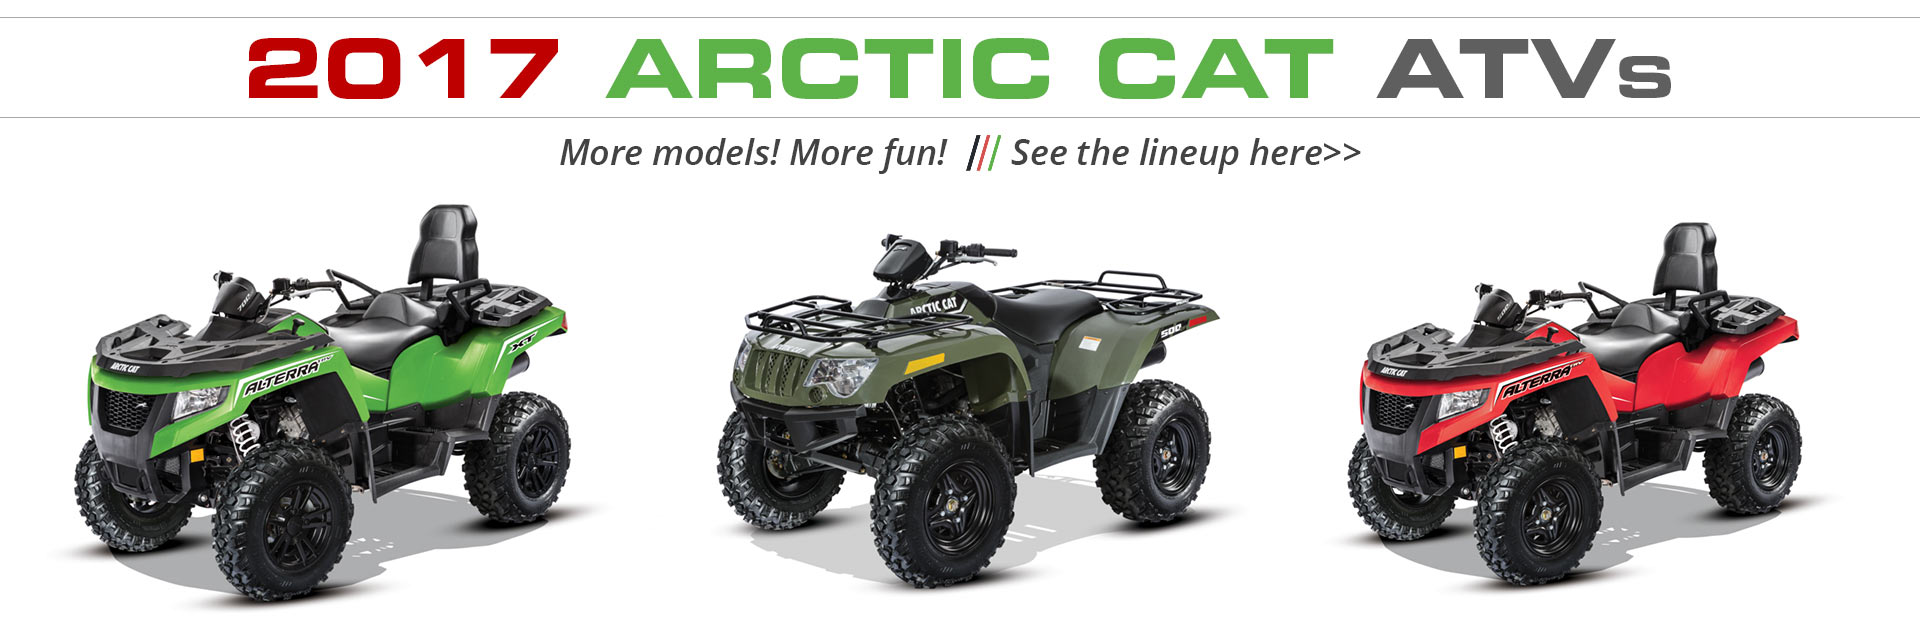 2017 Arctic Cat ATVs: Click here to view the models.